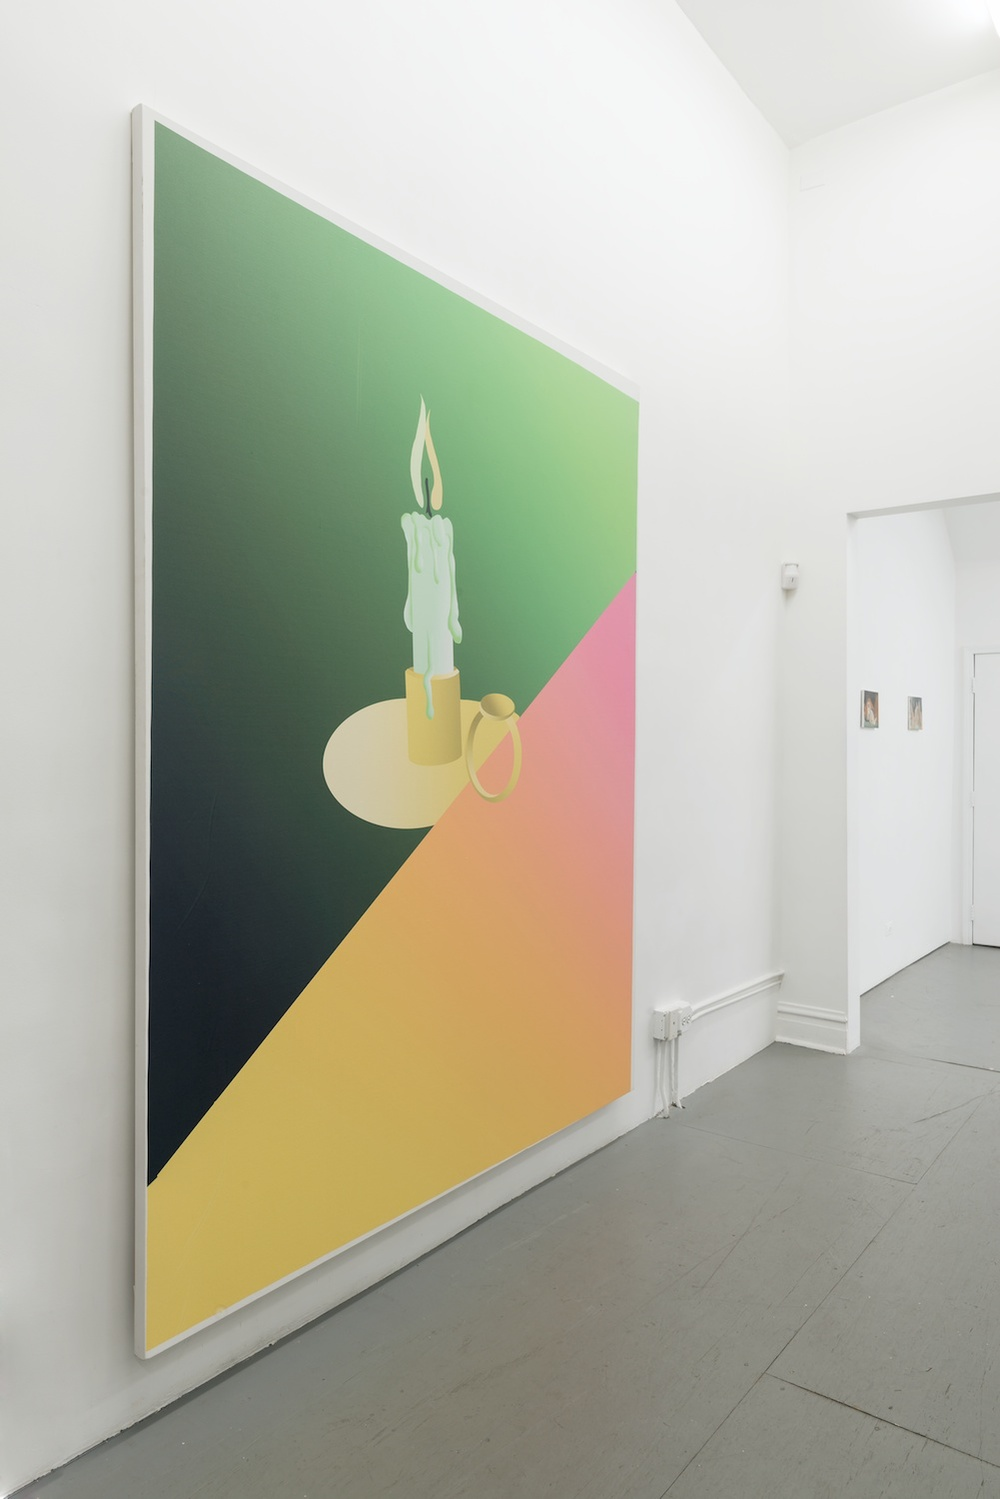 New Image Painting   2014   Shane Campbell Gallery, Chicago   Installation View